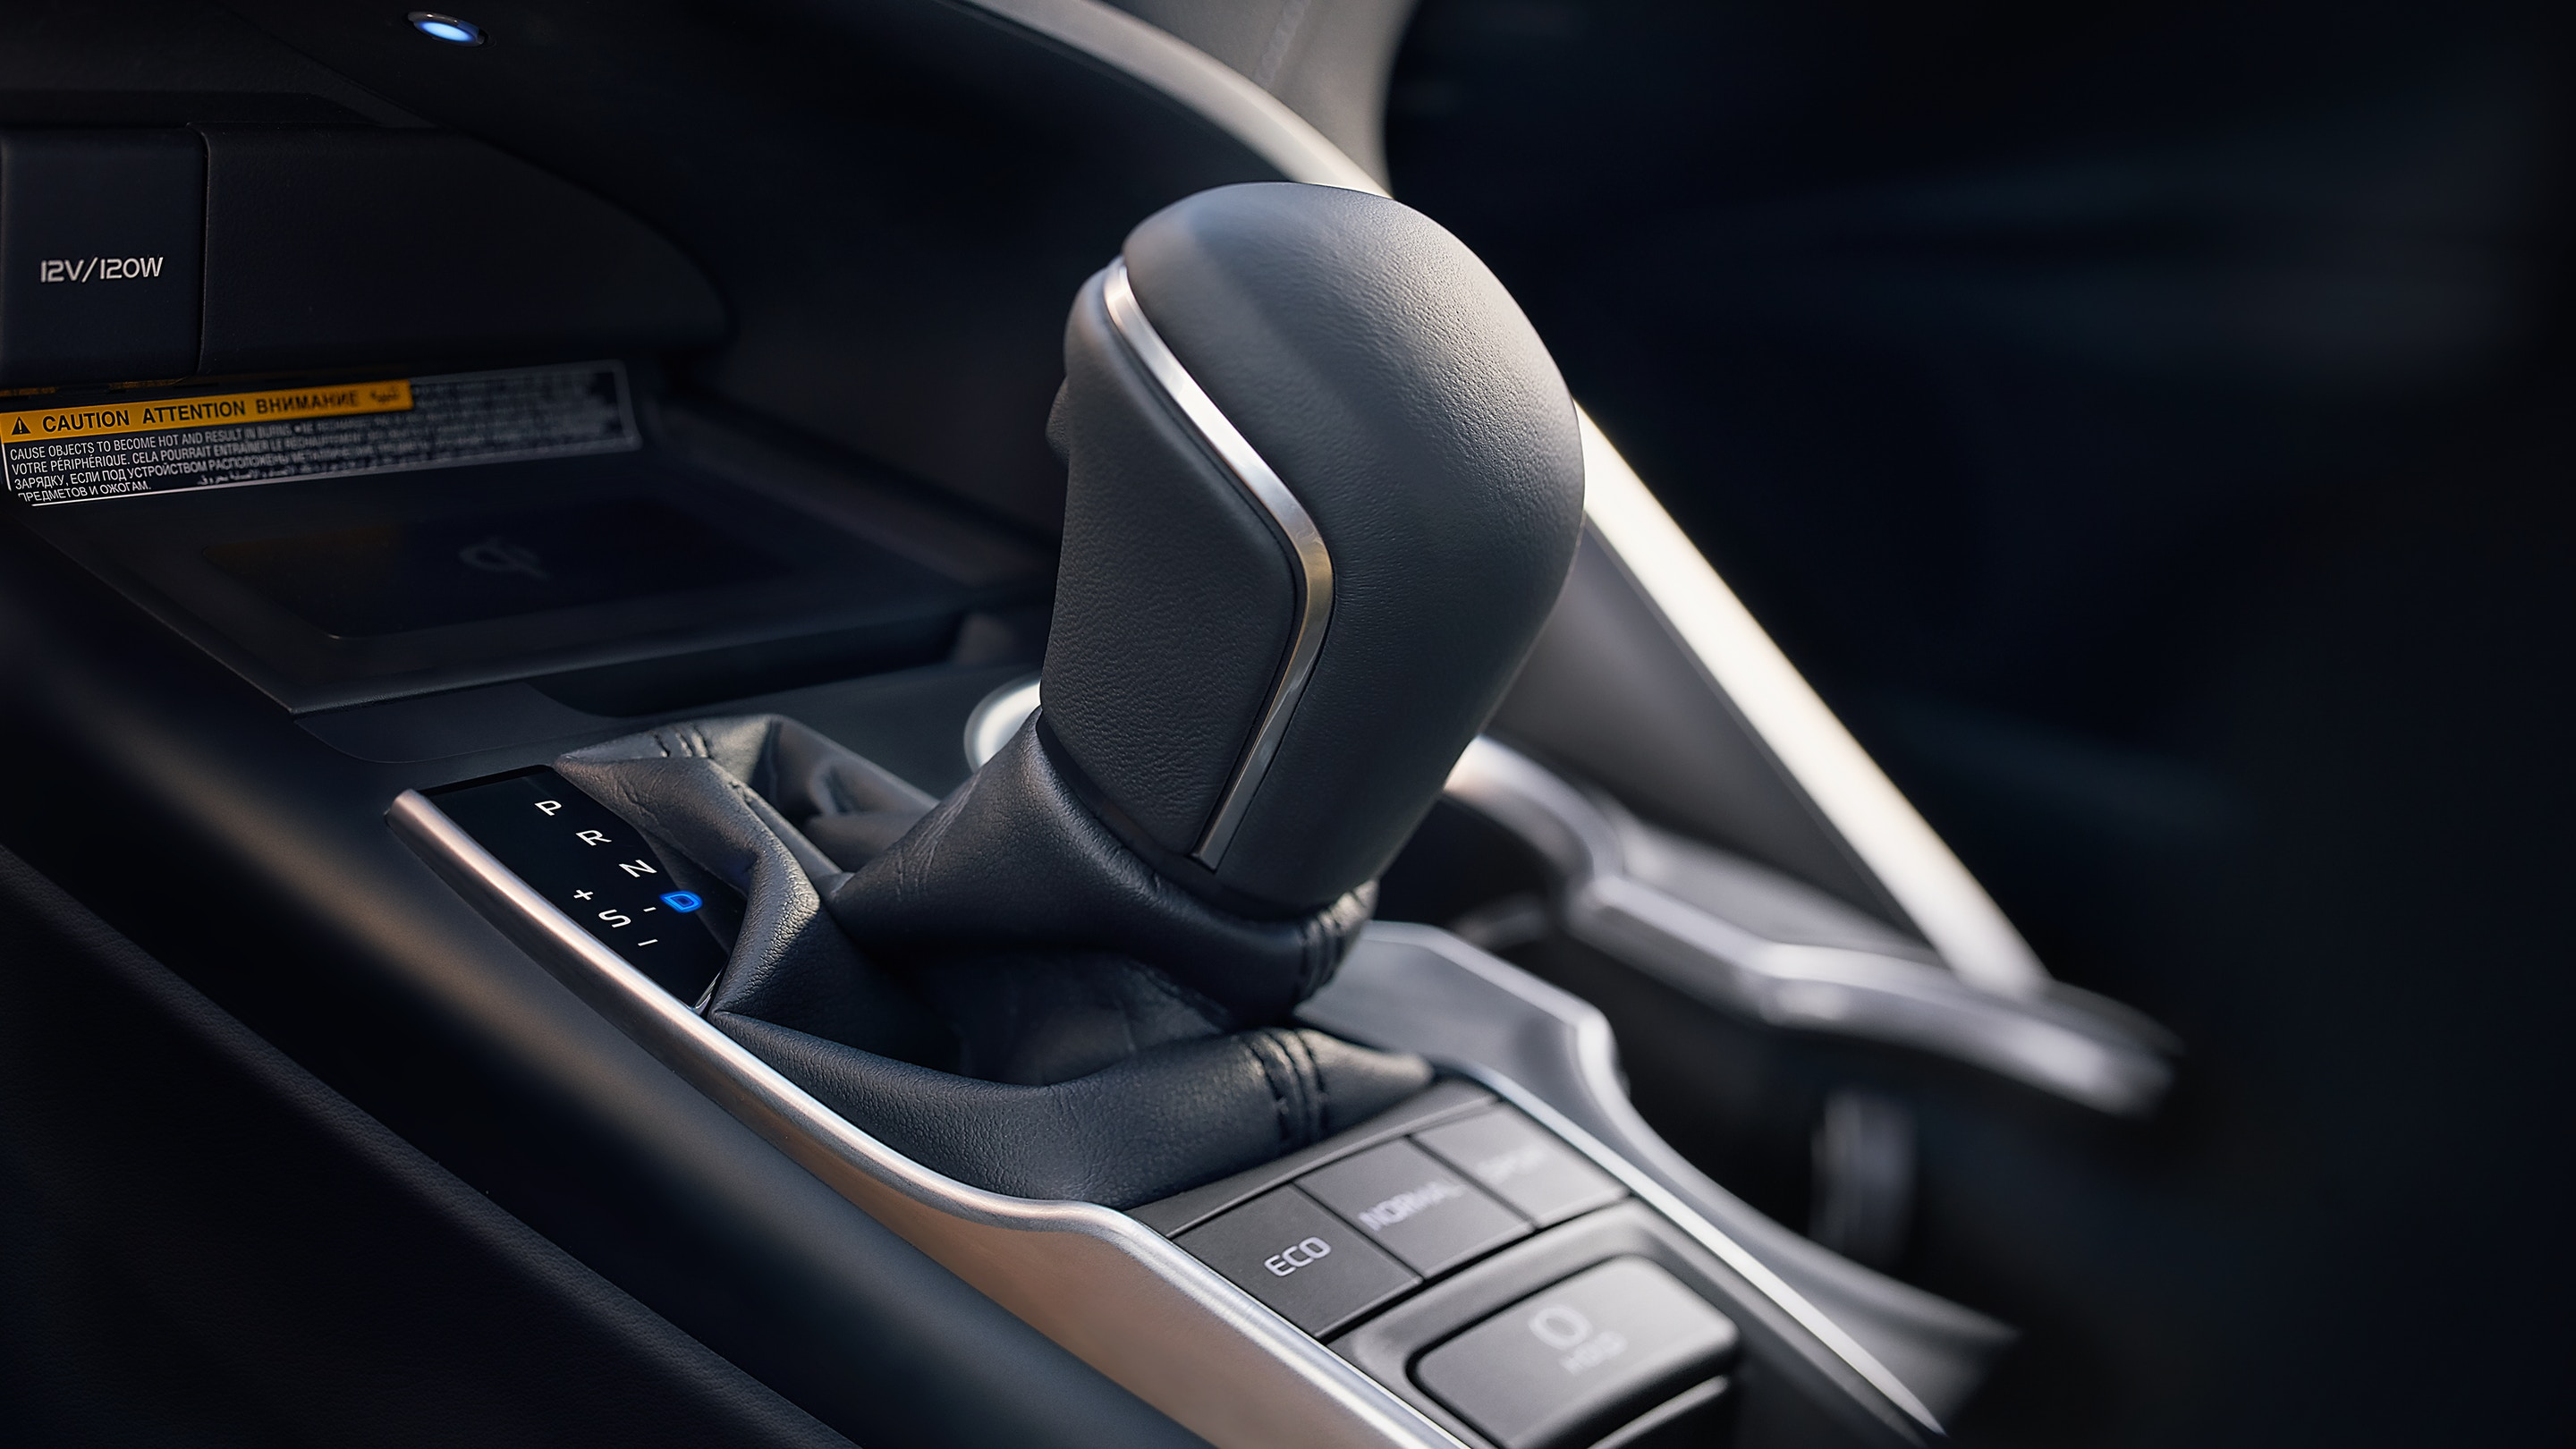 Shift Lever in the 2019 Camry